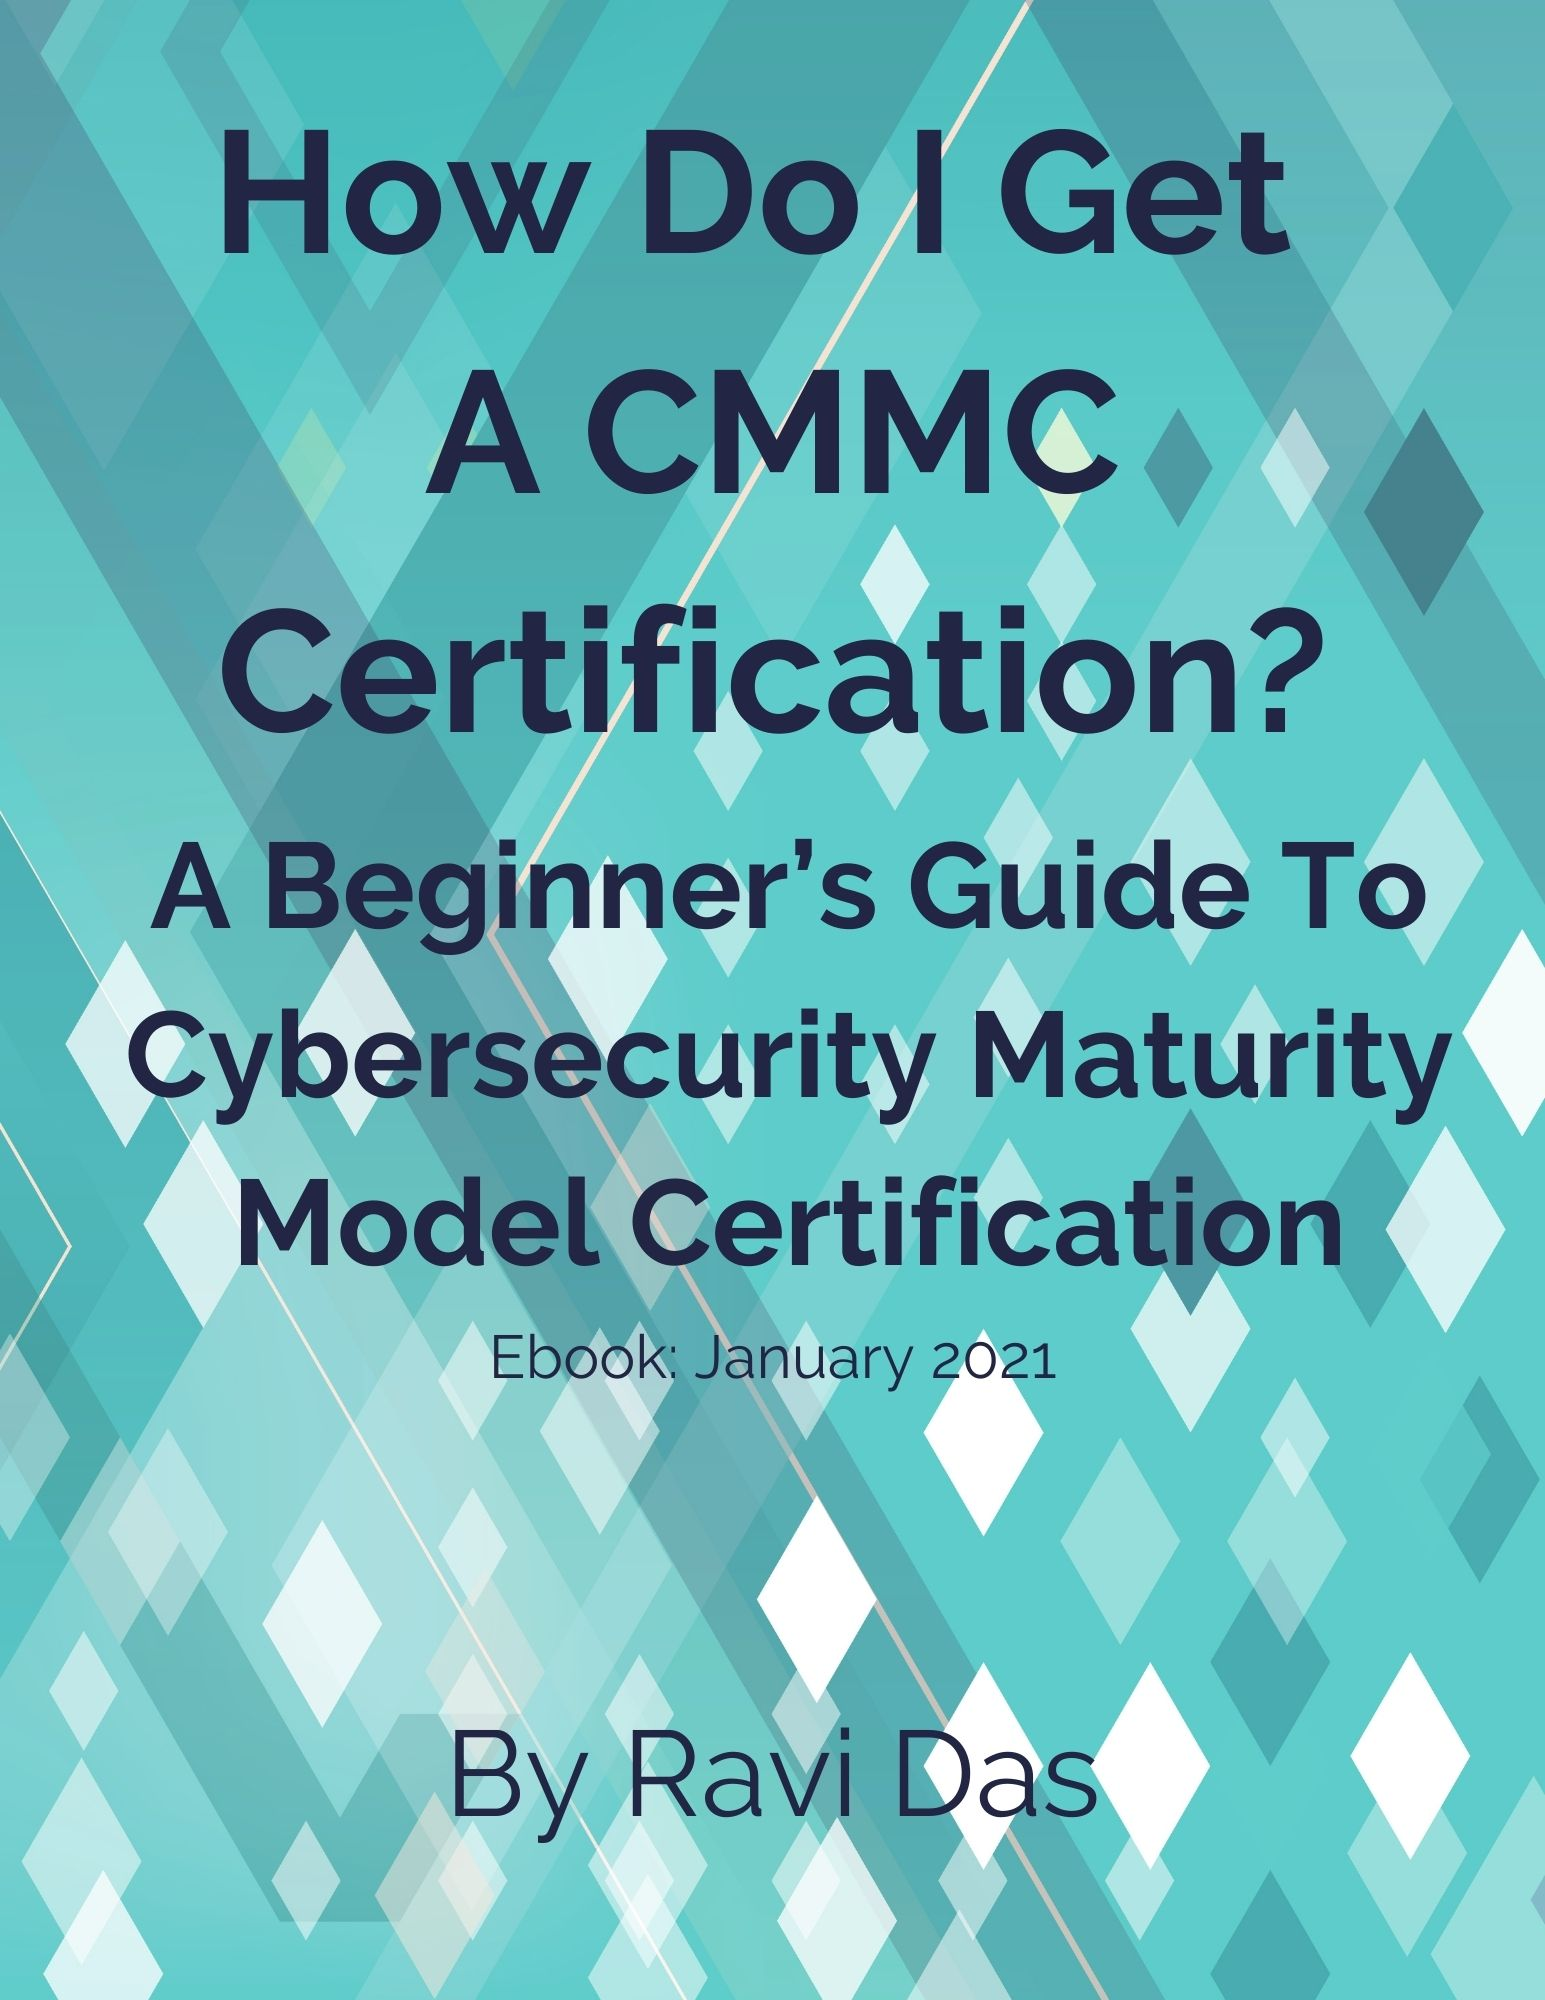 How Do I Get A CMMC Certification?